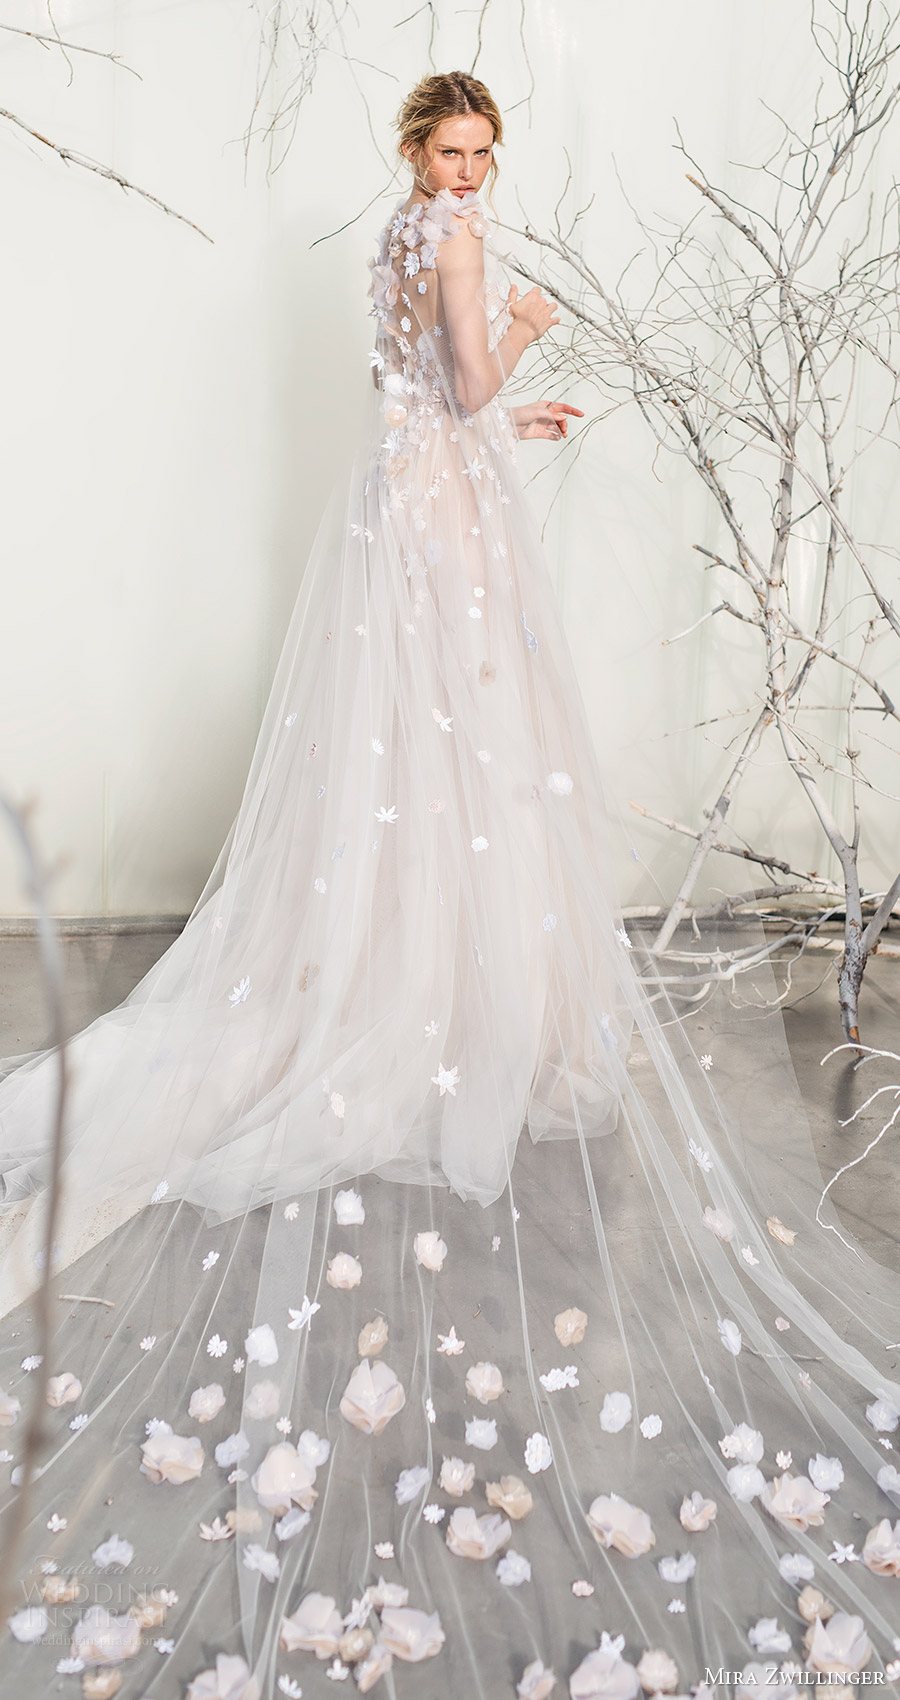 Long veil wedding dresses  Alleta David alletad on Pinterest